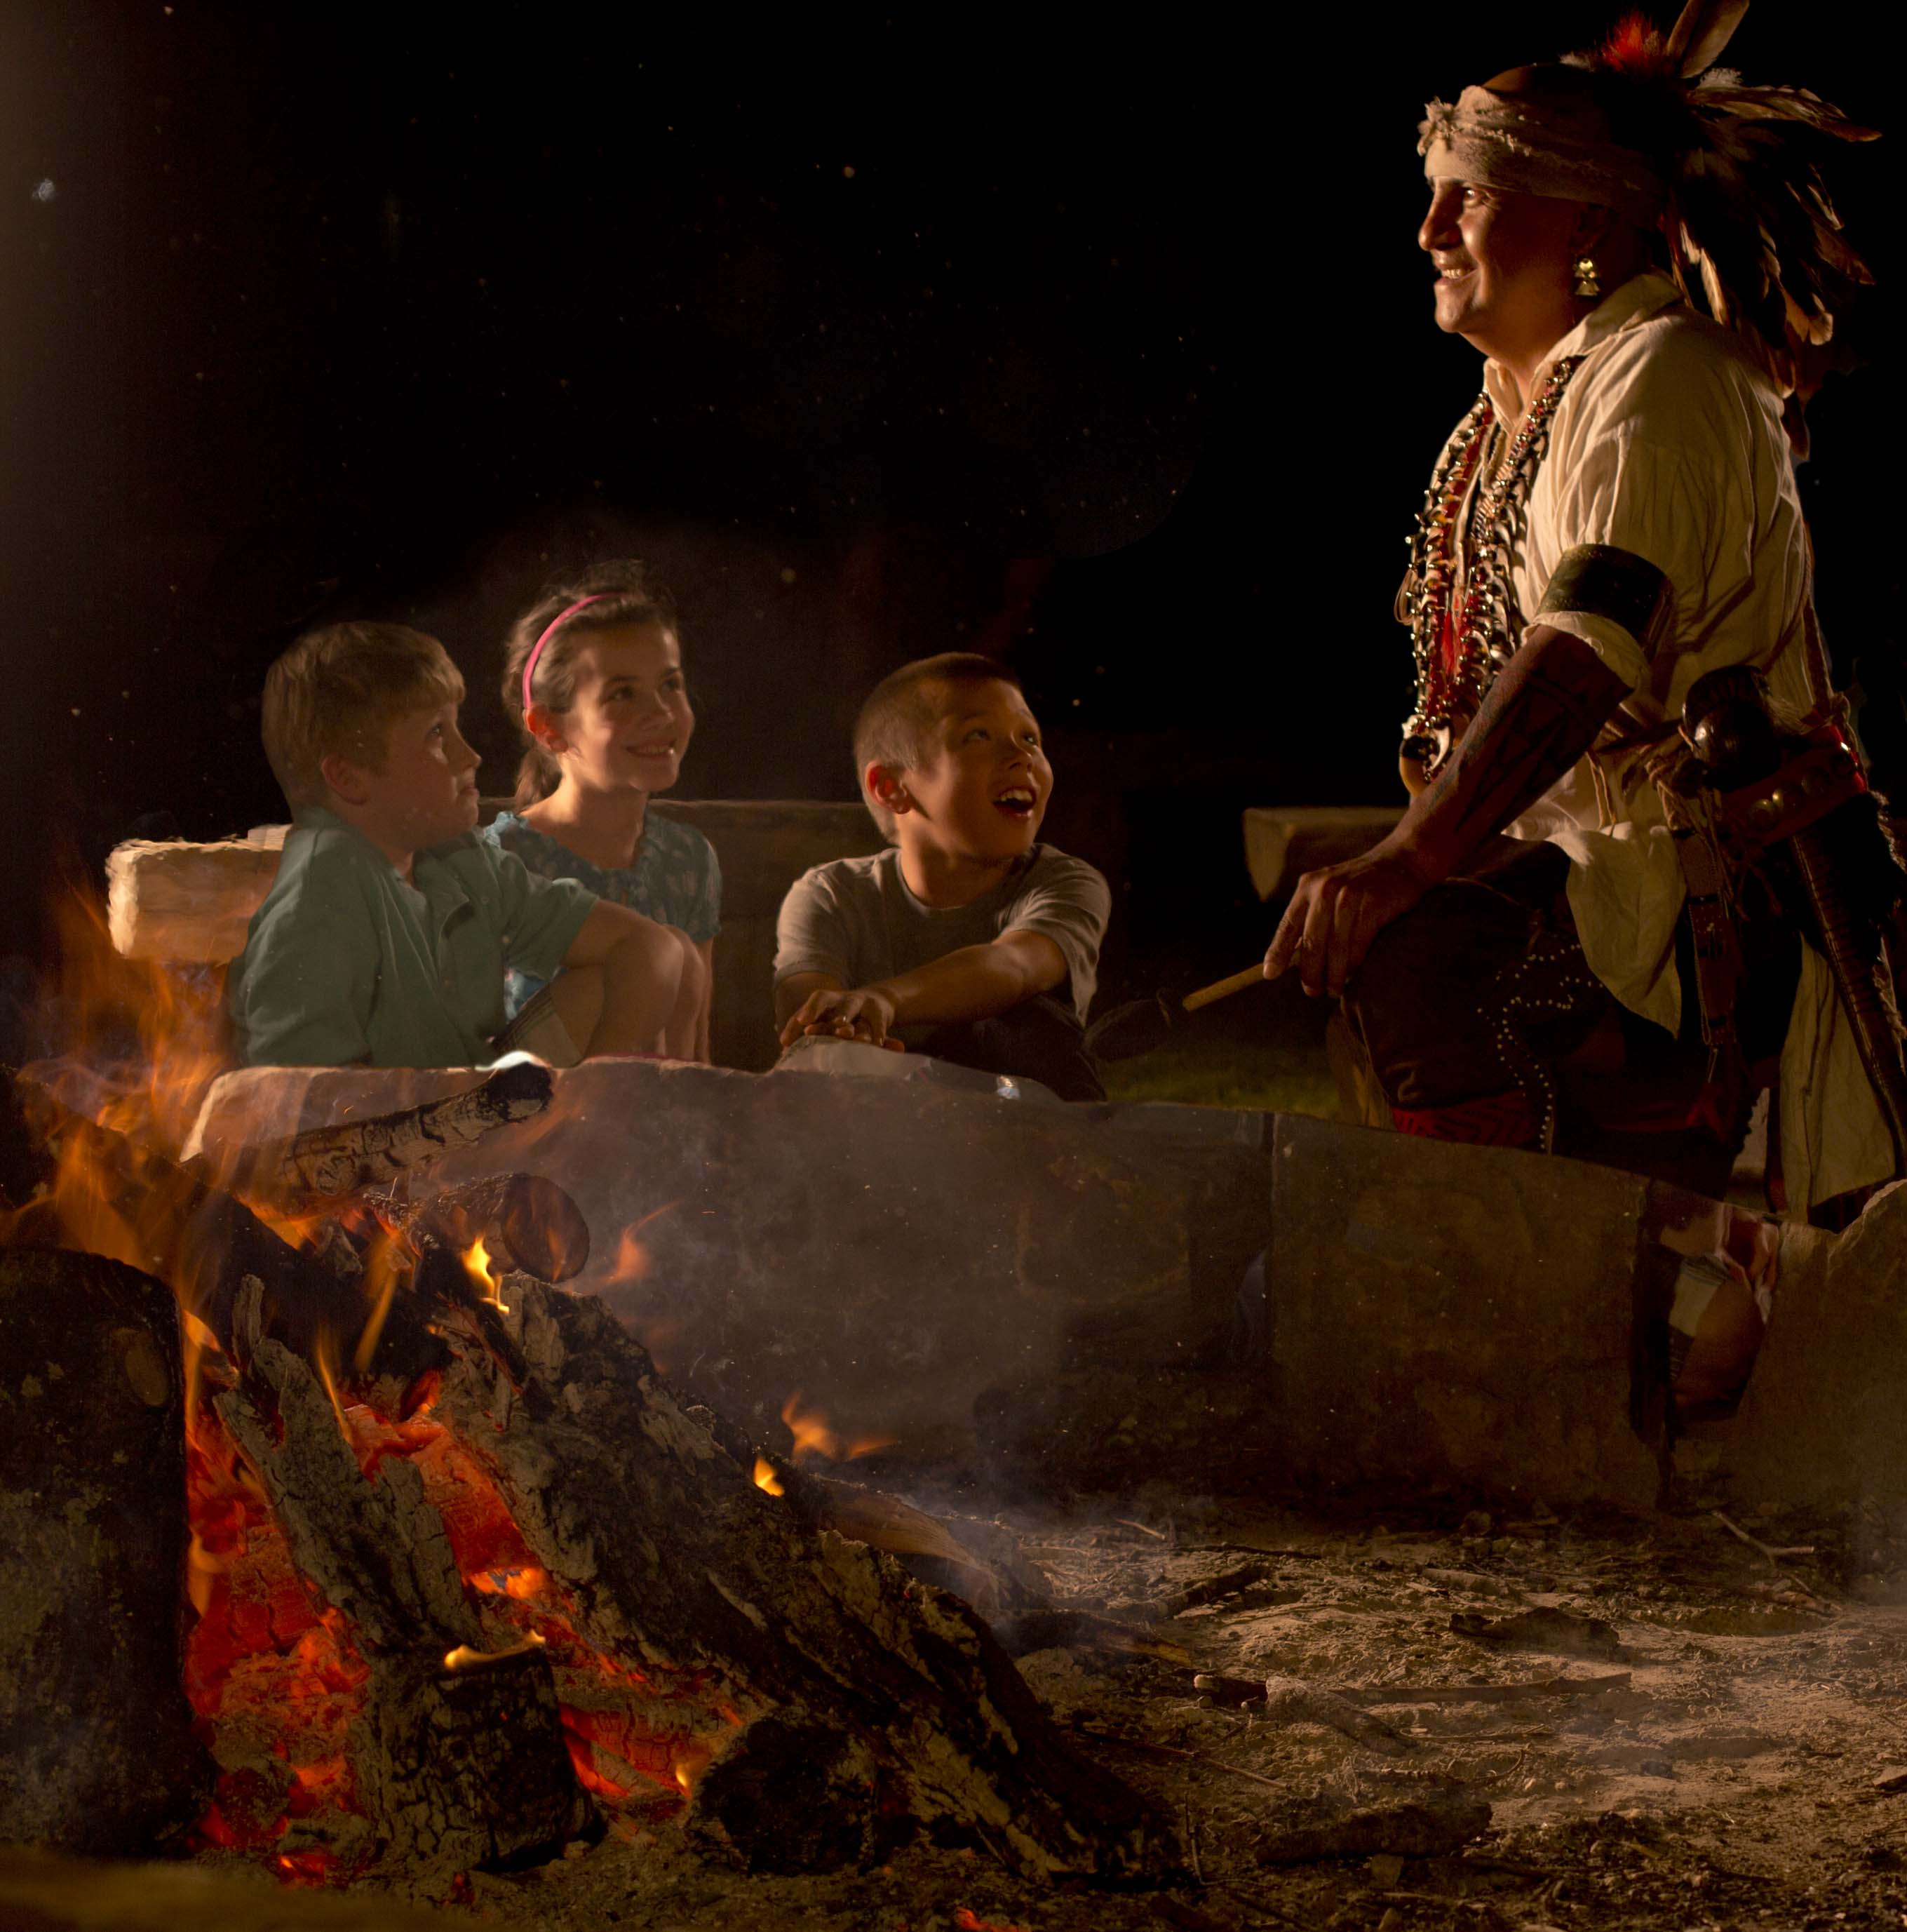 Cherokee storytellers to rekindle ancient tales | Cherokee, NC